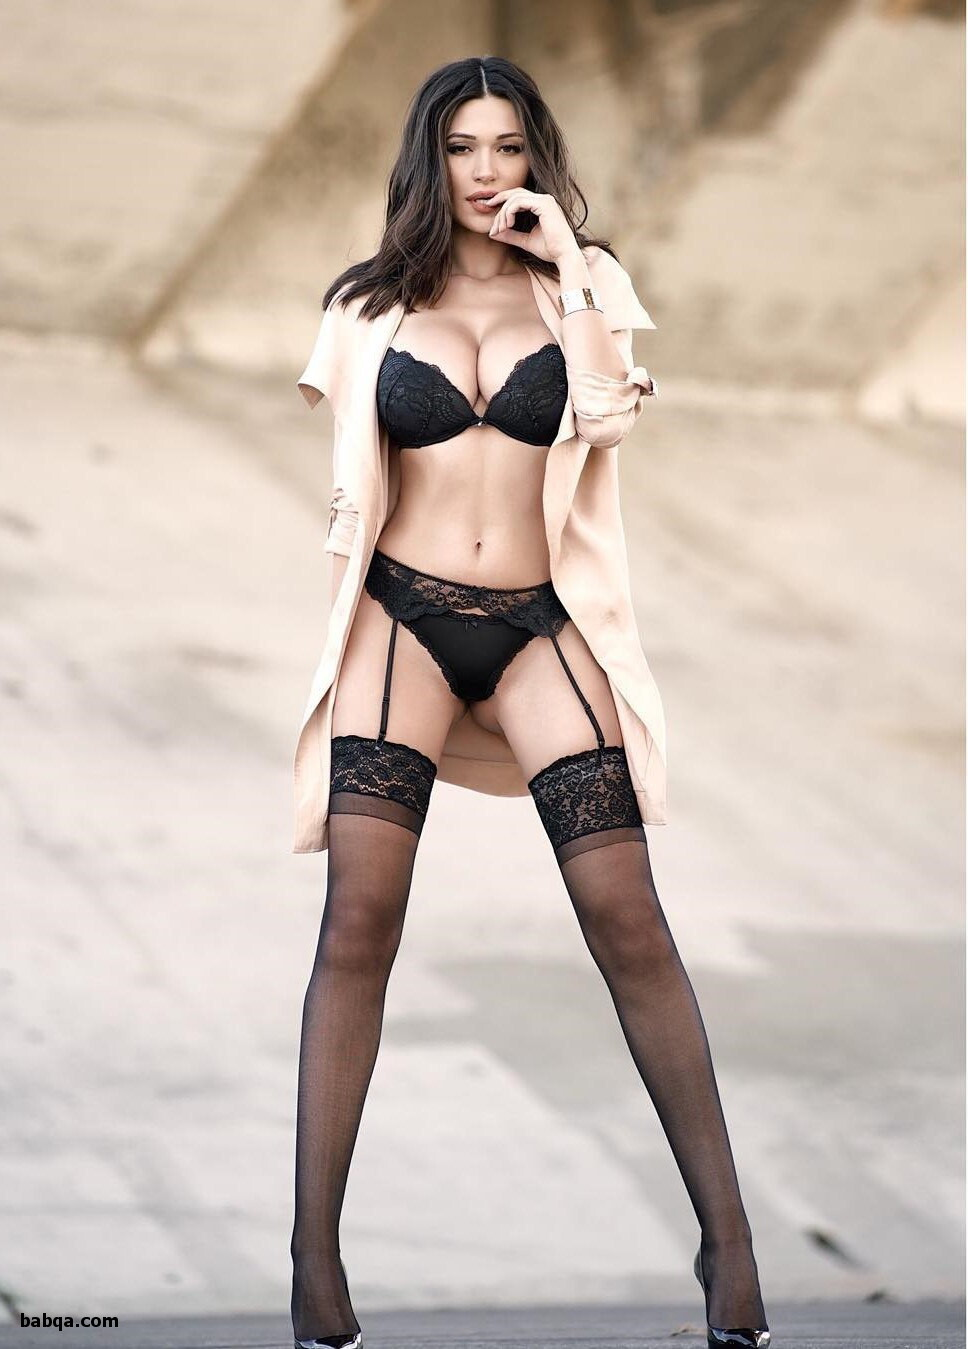 mature stockings pussy and bridal lingerie india